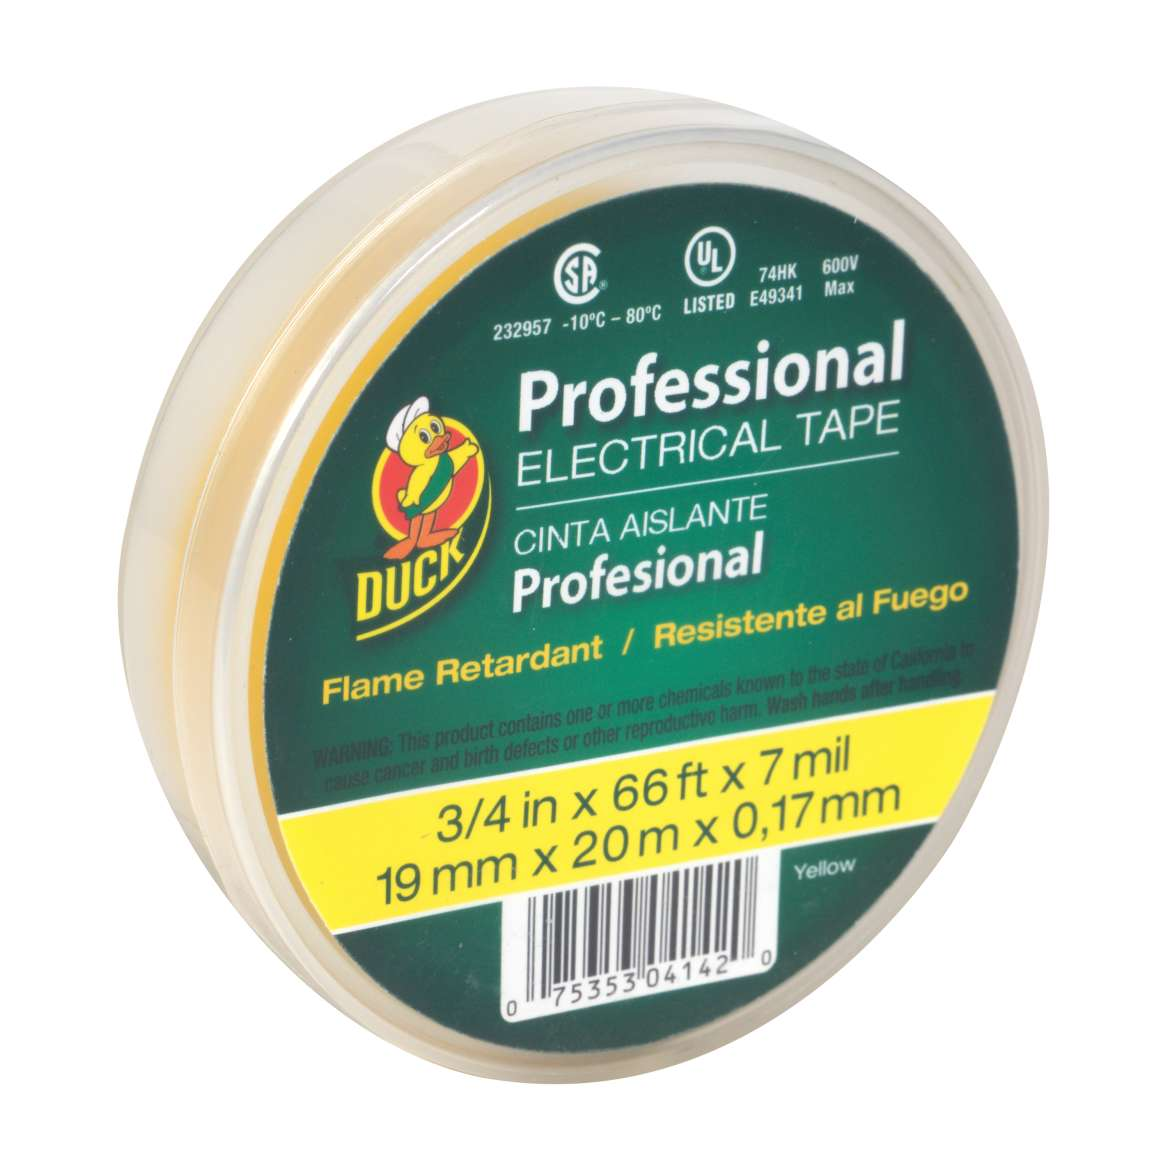 Duck® Brand Professional Electrical Tape Canister Pack - Yellow, .75 in. x 66 ft. x 7 mil. Image